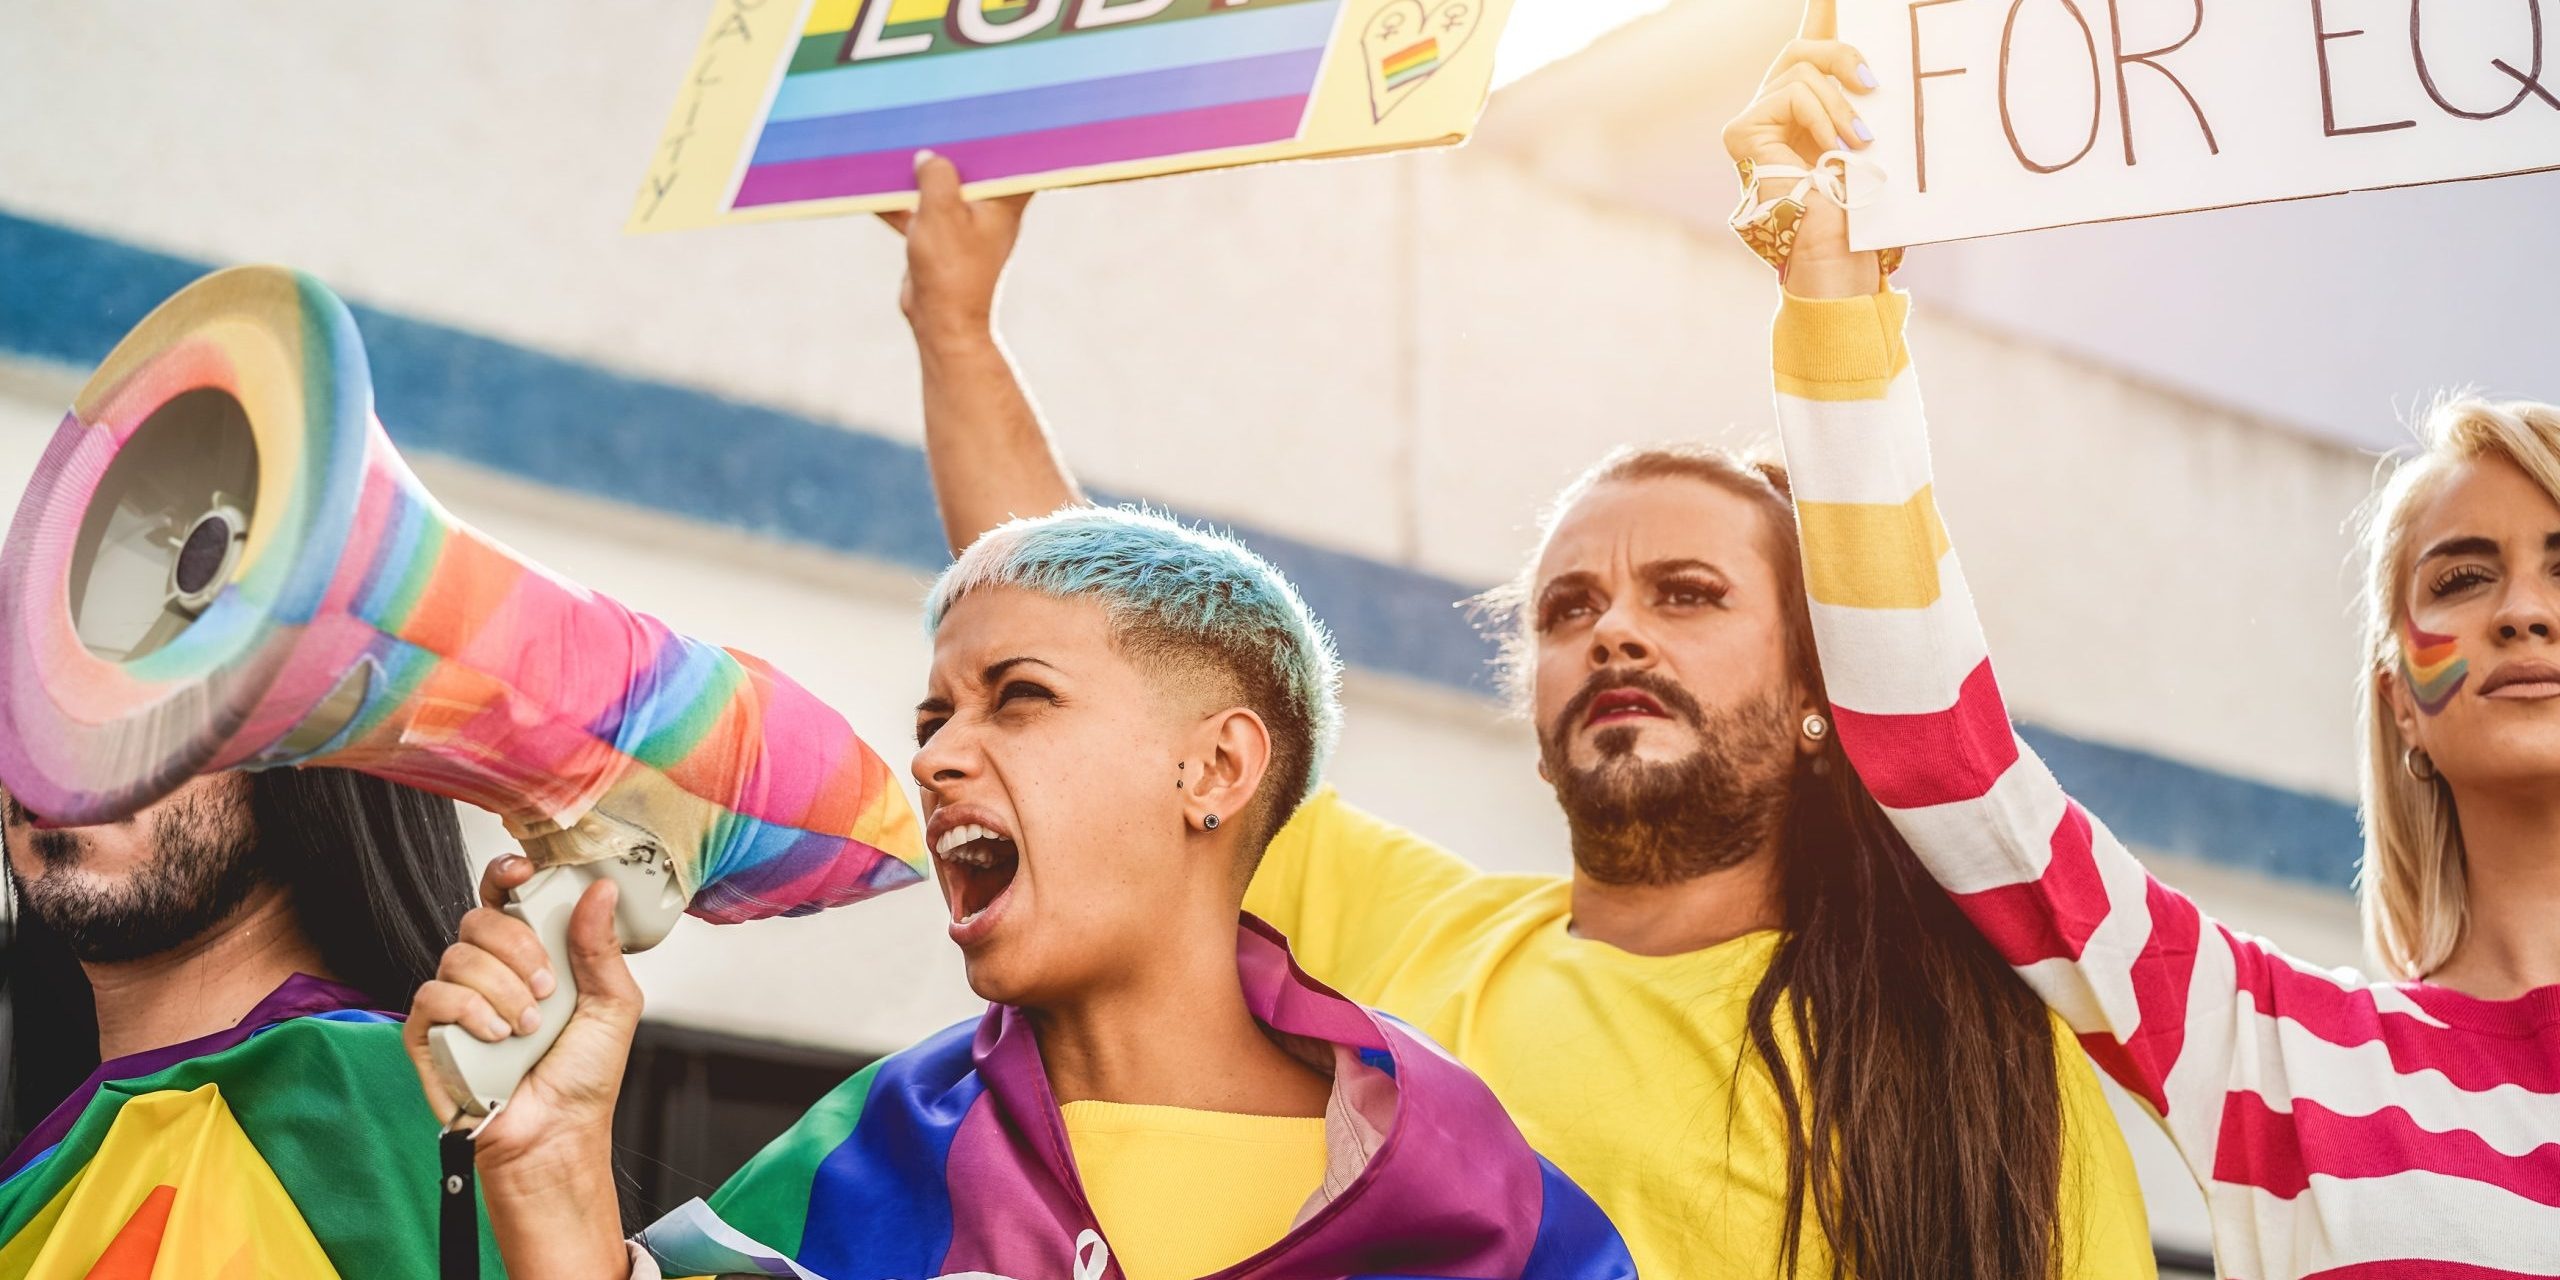 Gay and transgender people protest at pride event outdoor- Lgbt and equality rights concept - Focus on girl screaming